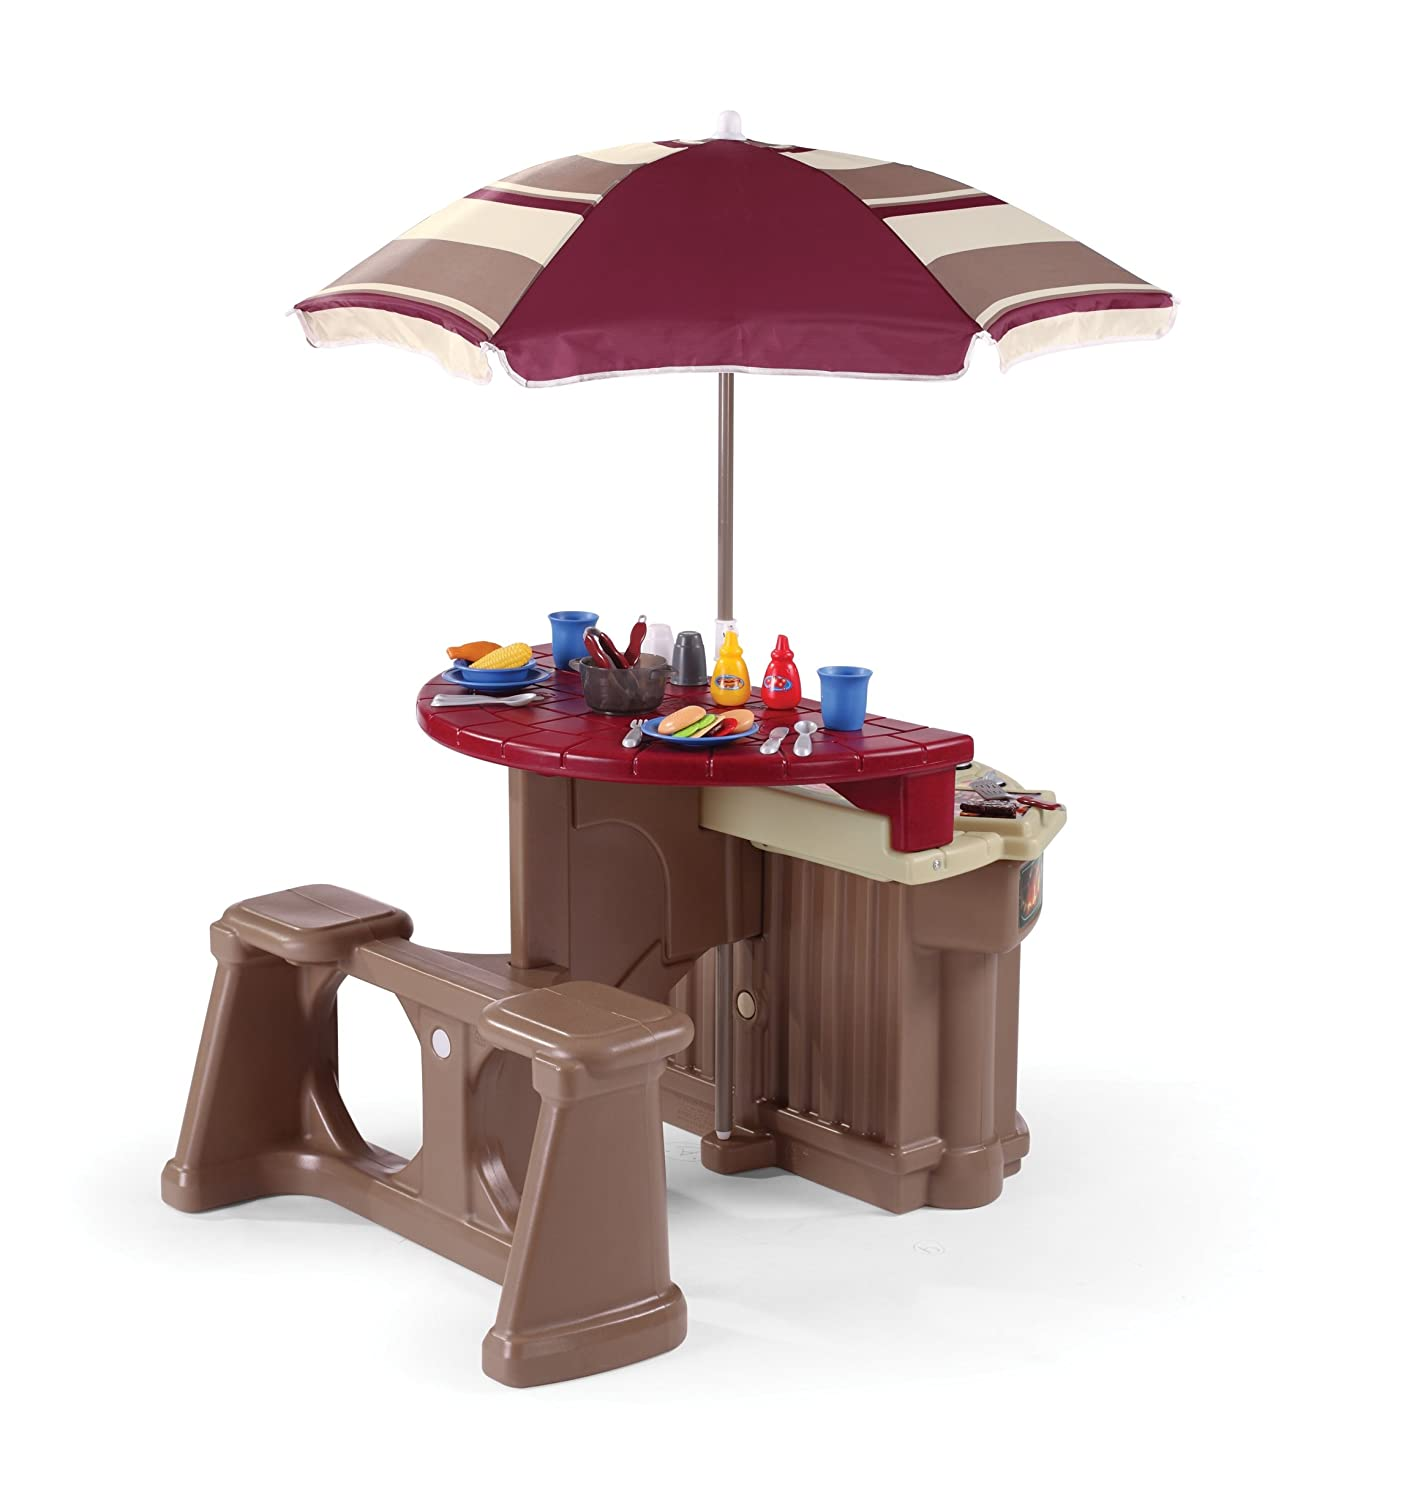 Inspirational Outdoor Play Kitchen Taste